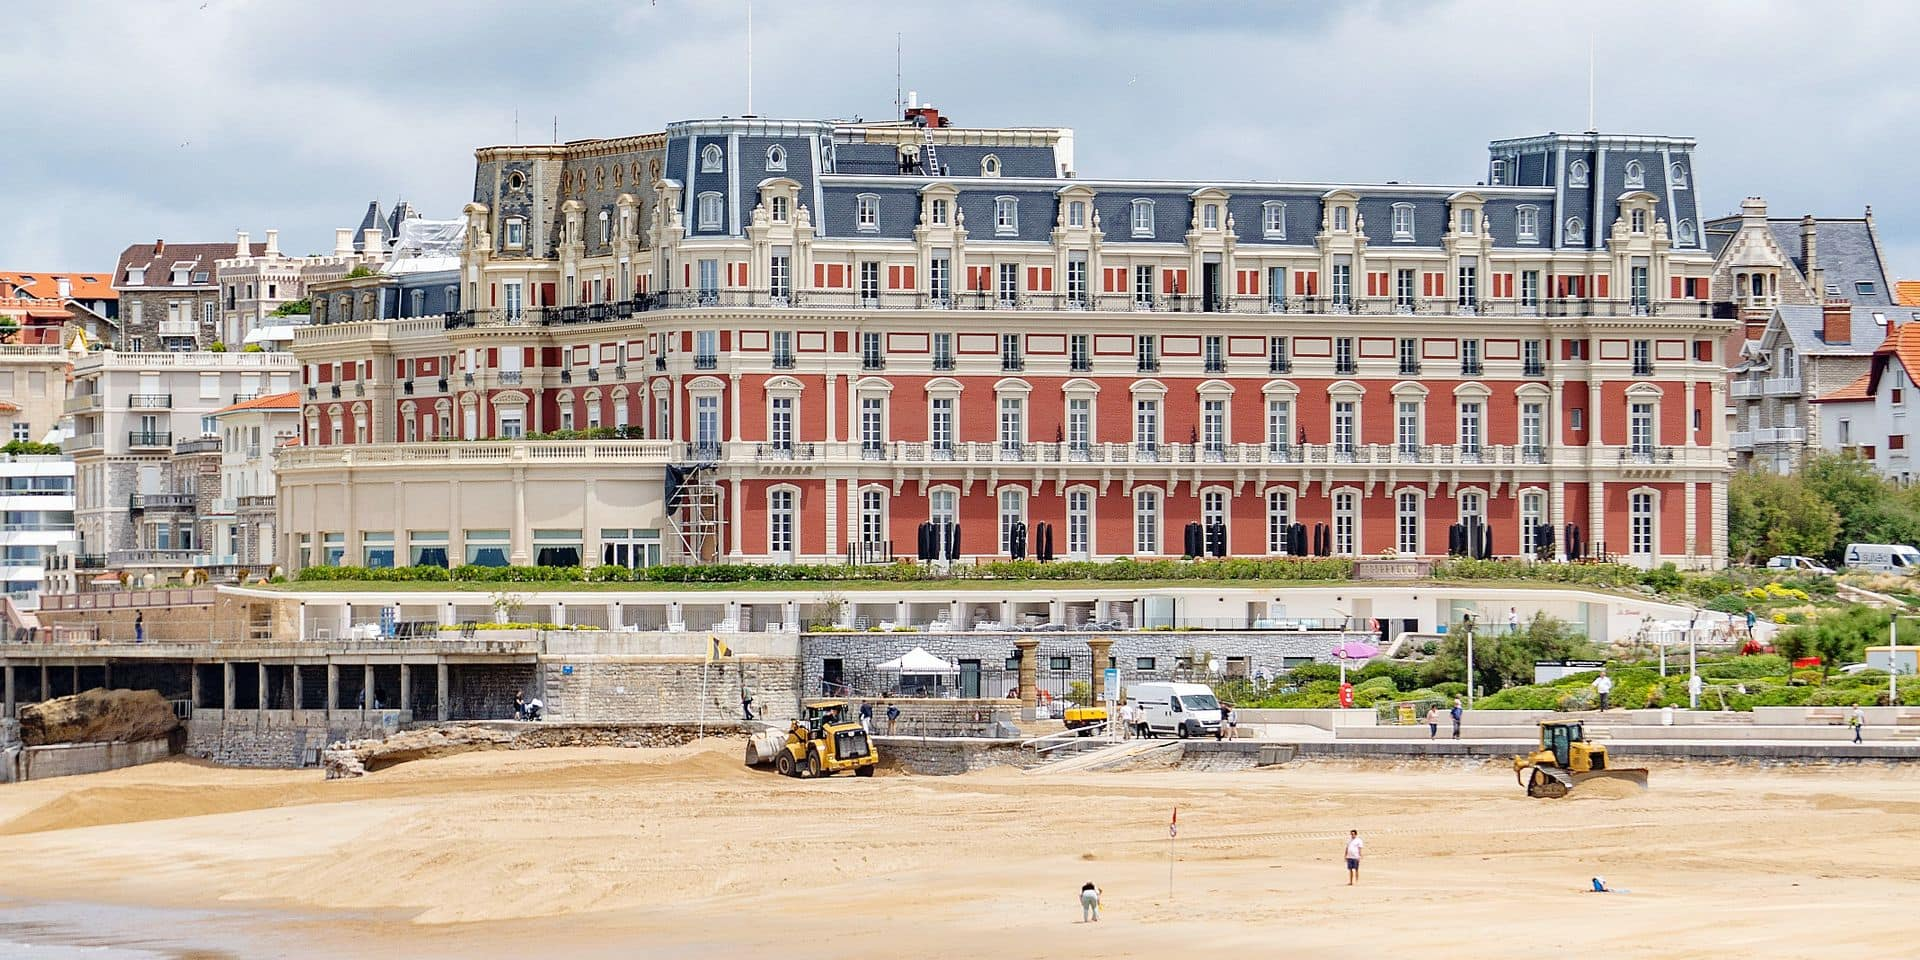 Hotel du Palais in Biarritz - G7 summit in France